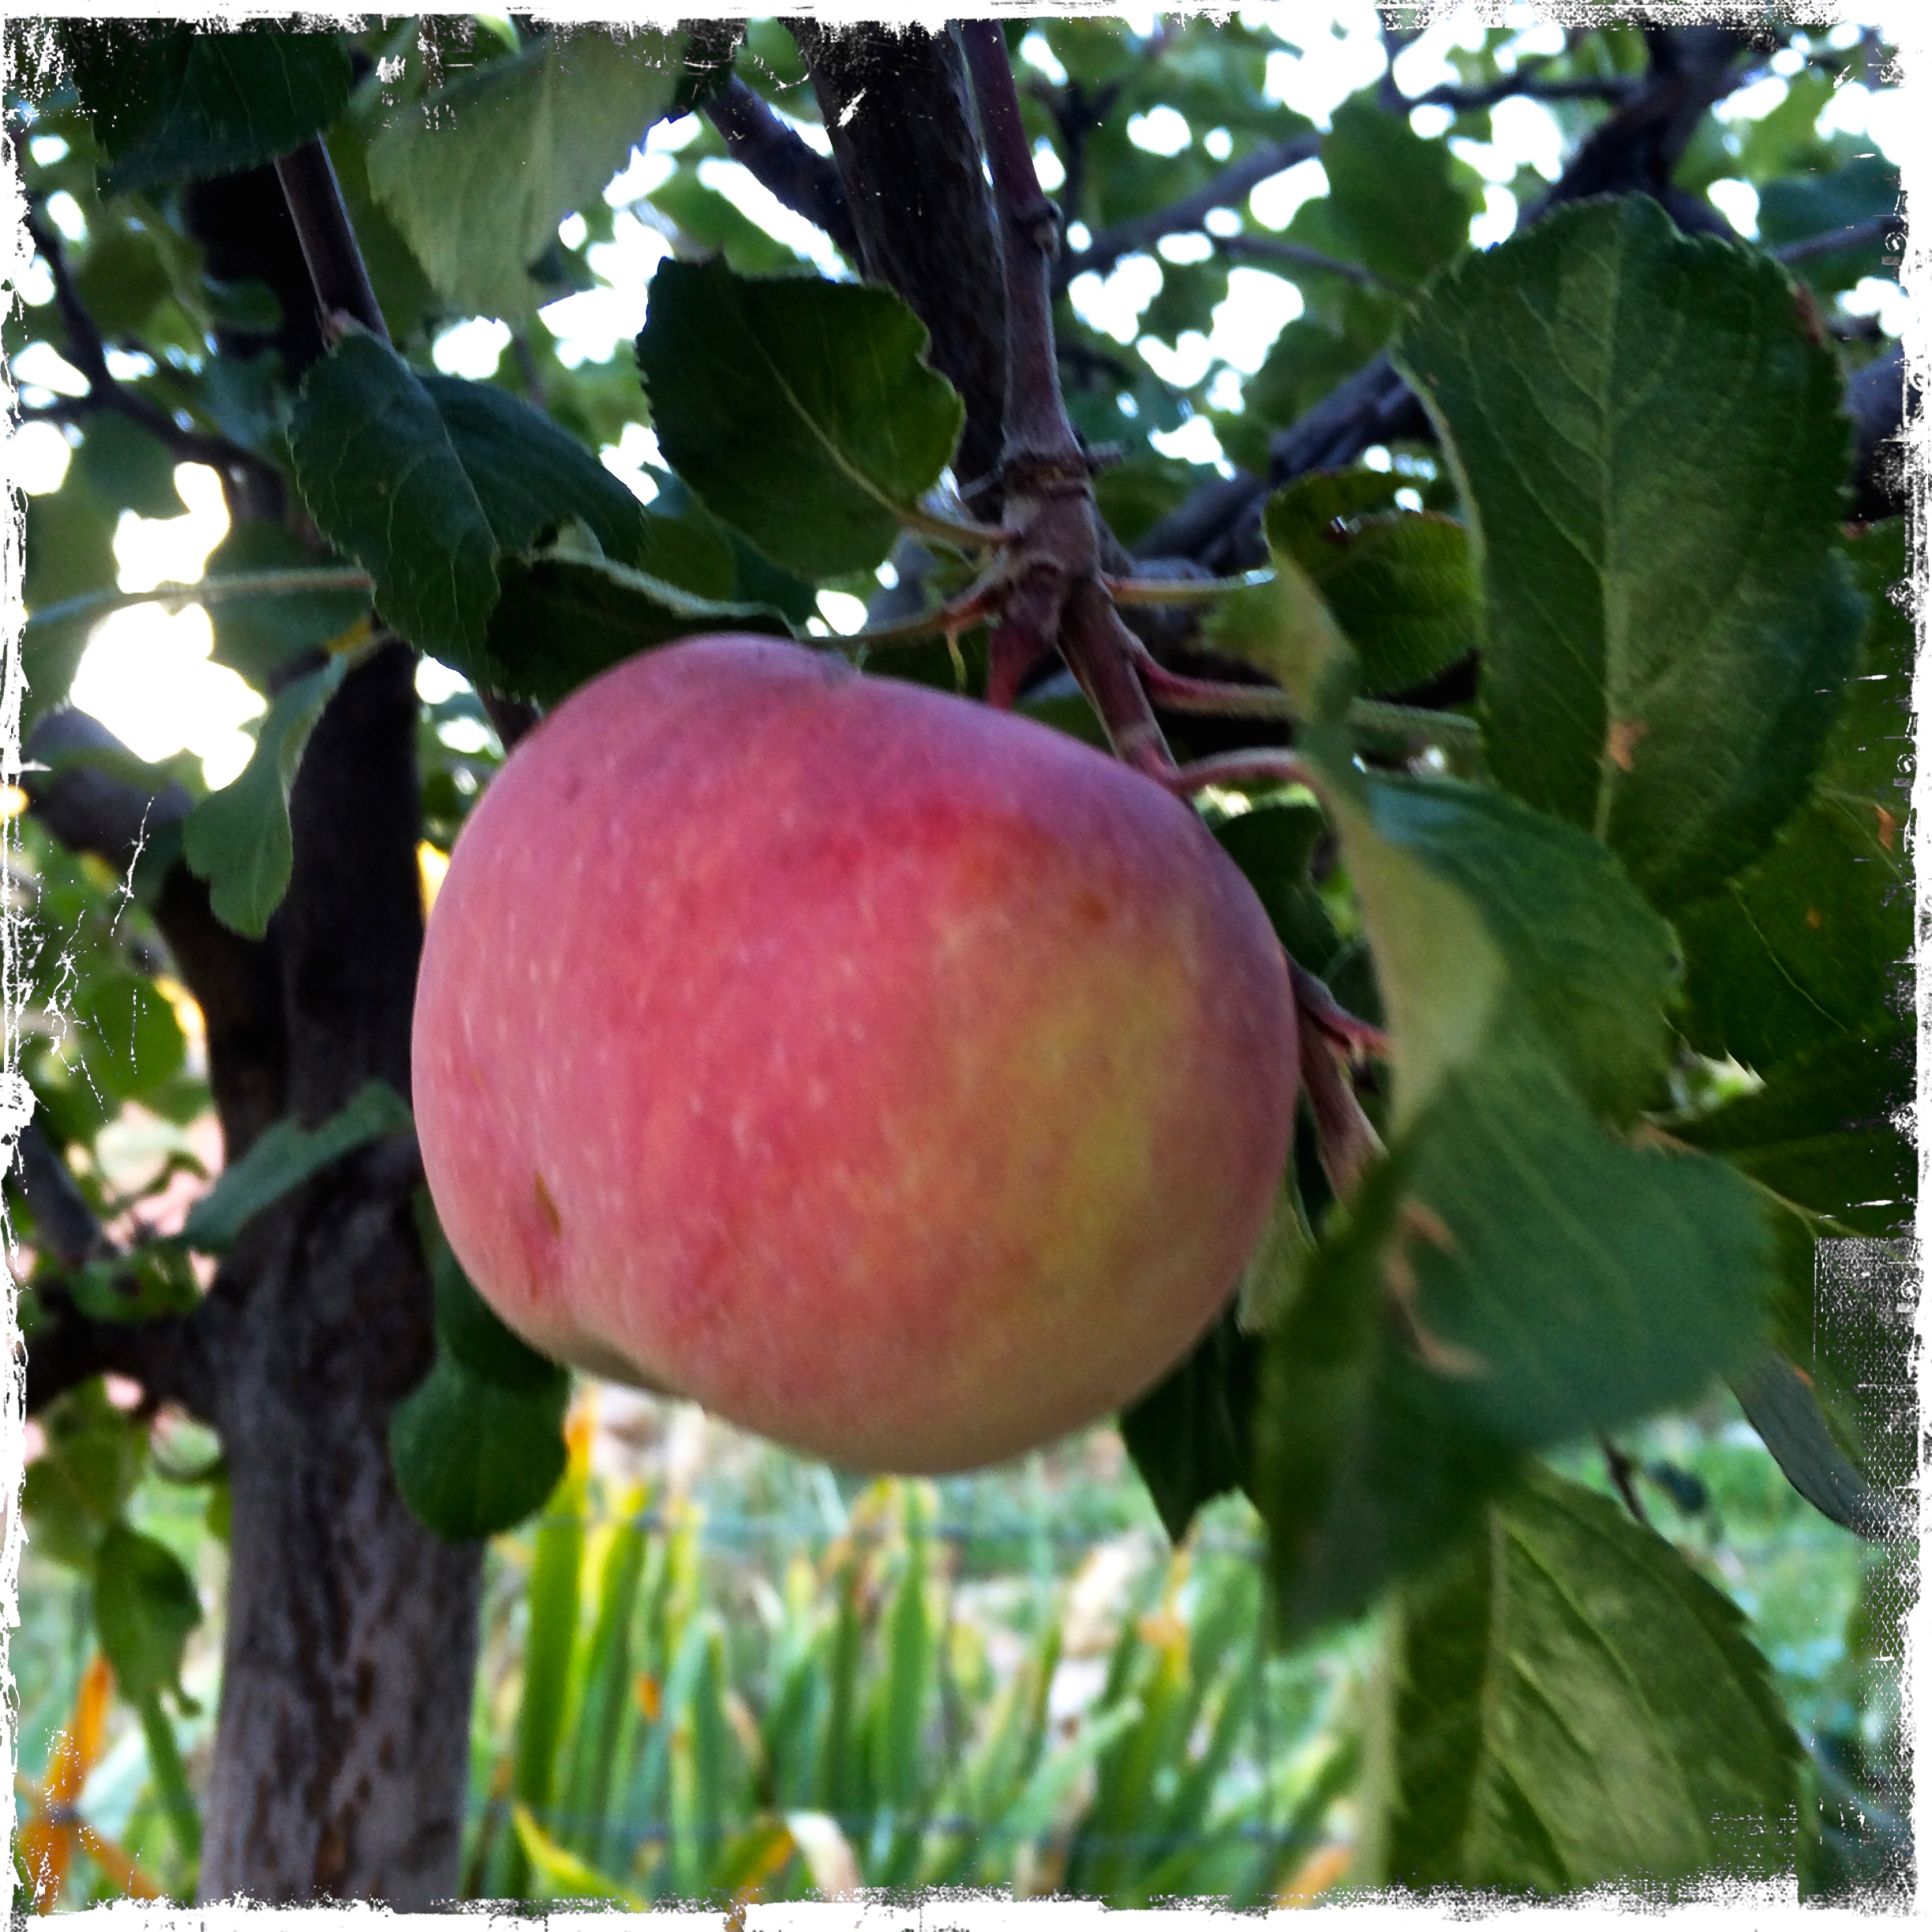 The sum total of my entire fruit harvest this year, one little Fuji apple. The rest, the handful of apricots, peaches, and almonds that survived late spring freezes, fed the birds and chipmunks before they ripened.